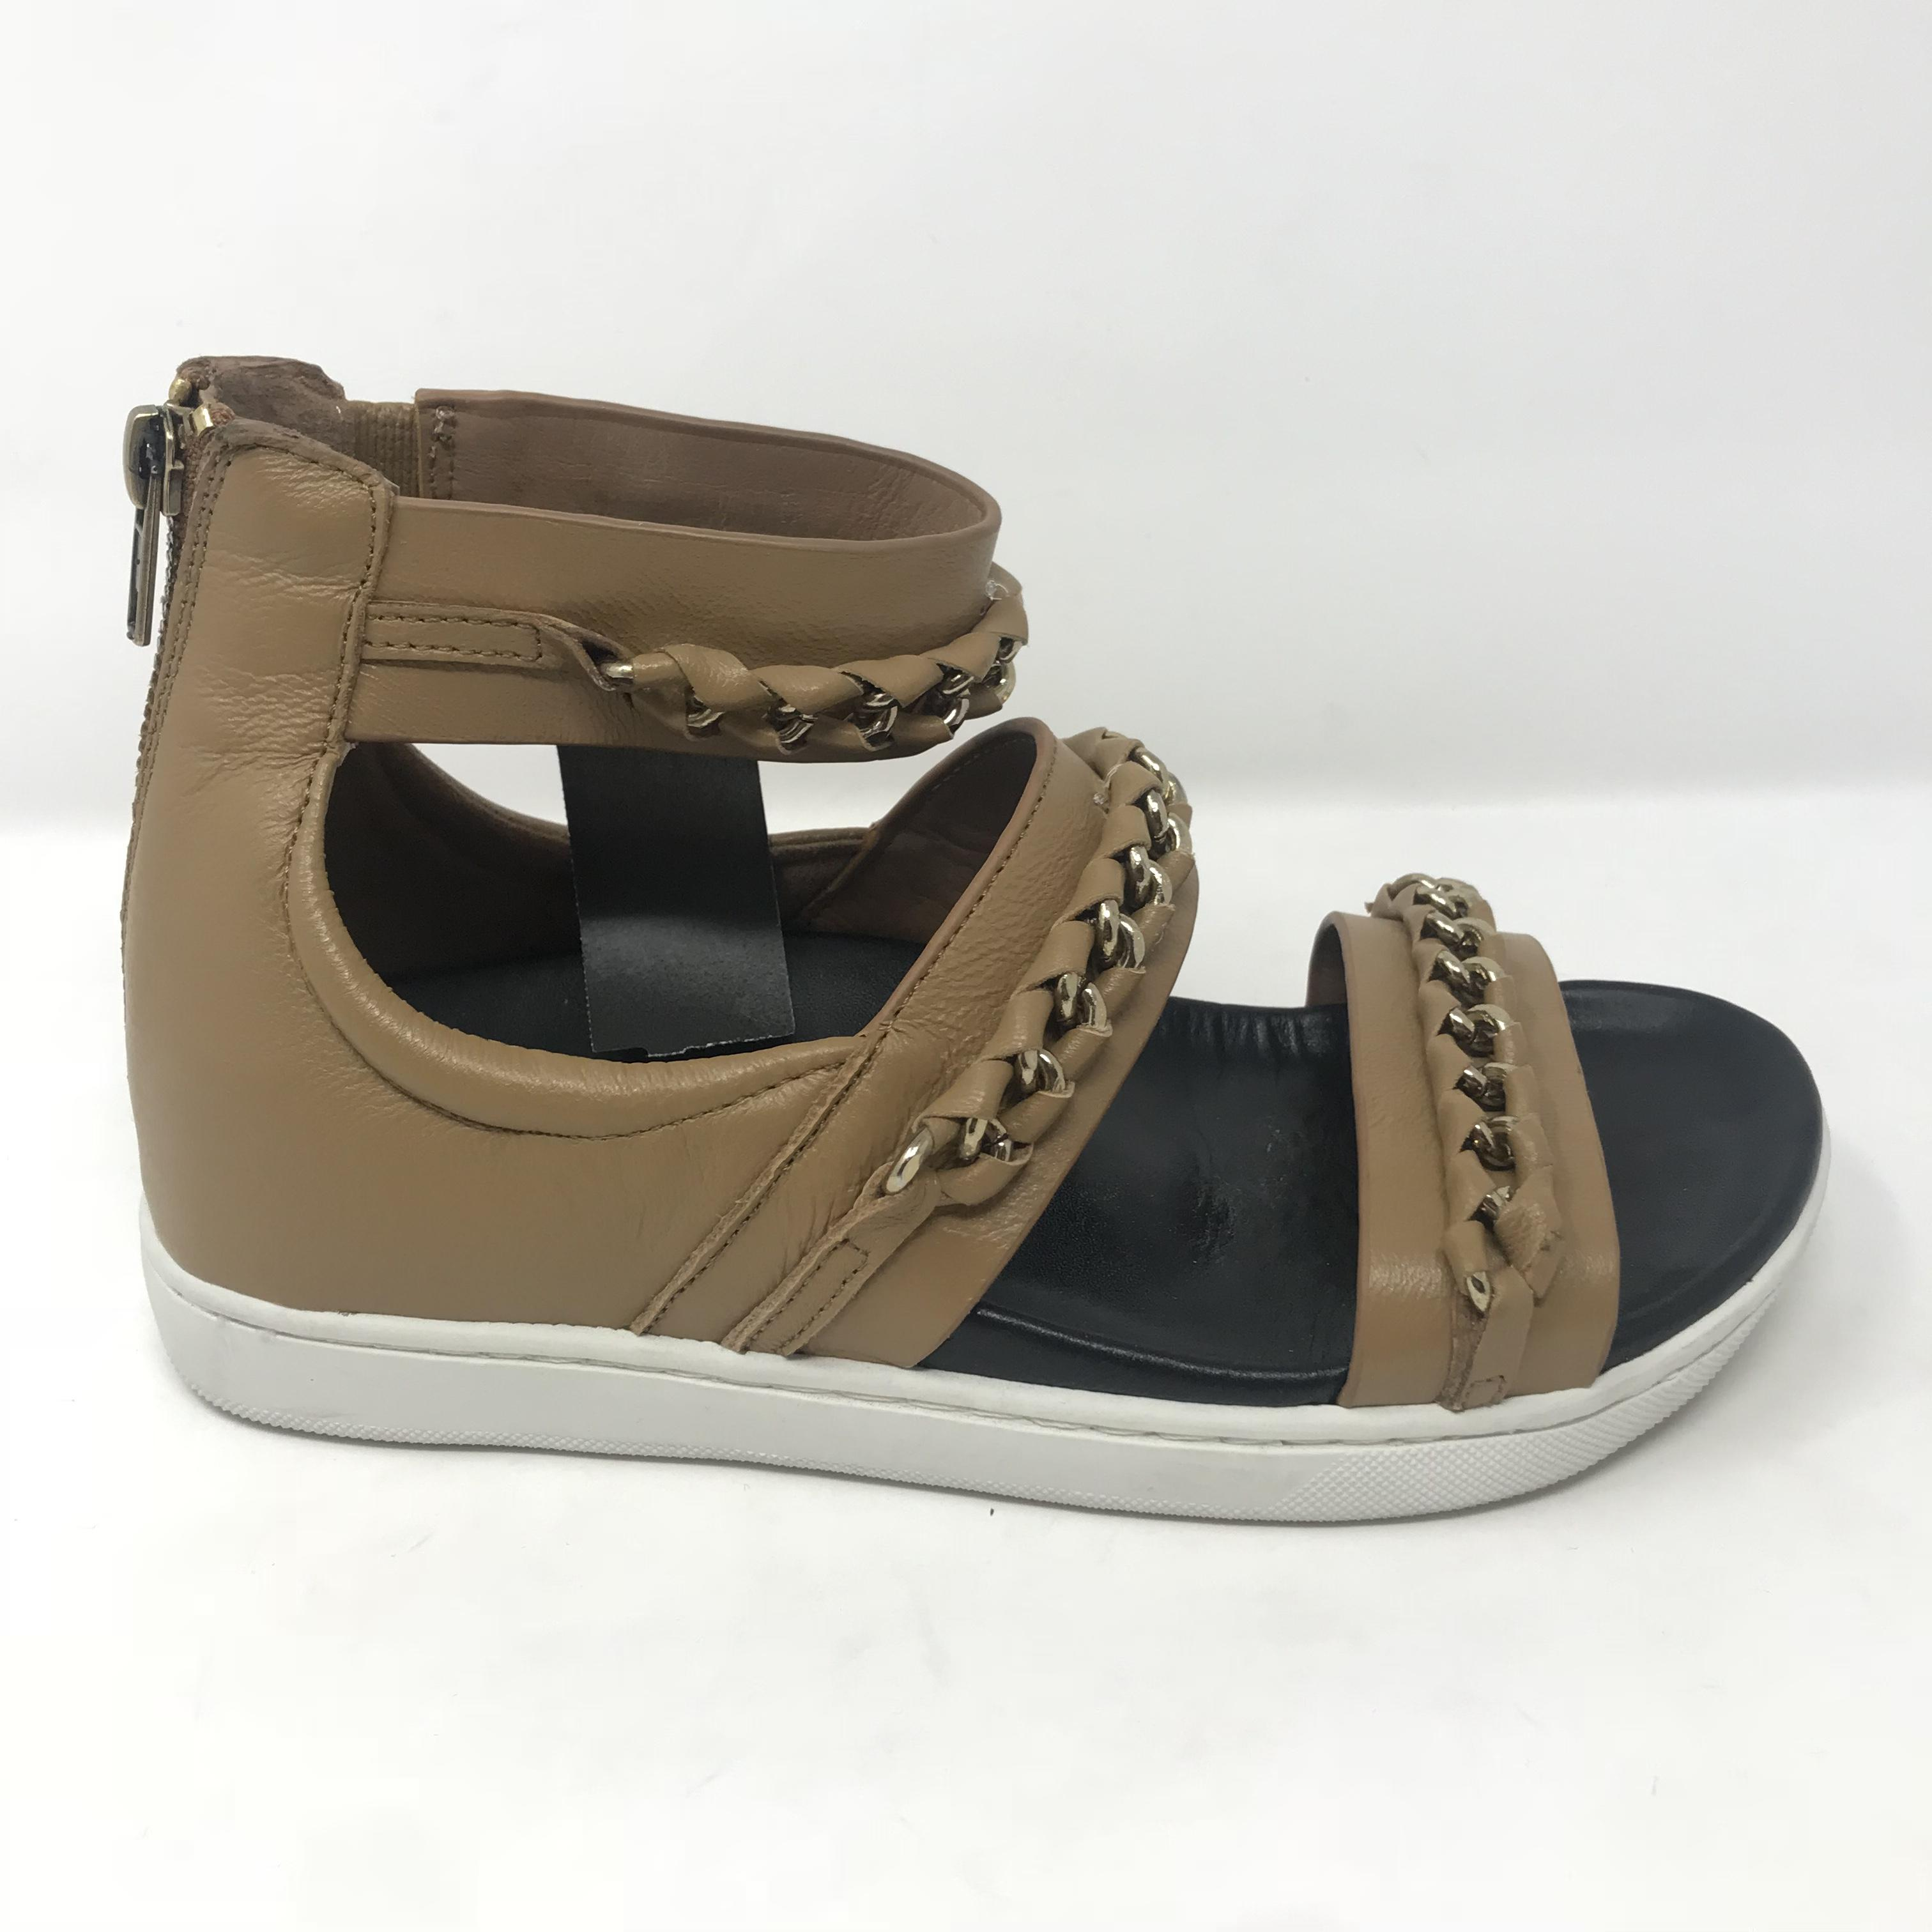 A7EIJE Shoes Price: $136.99